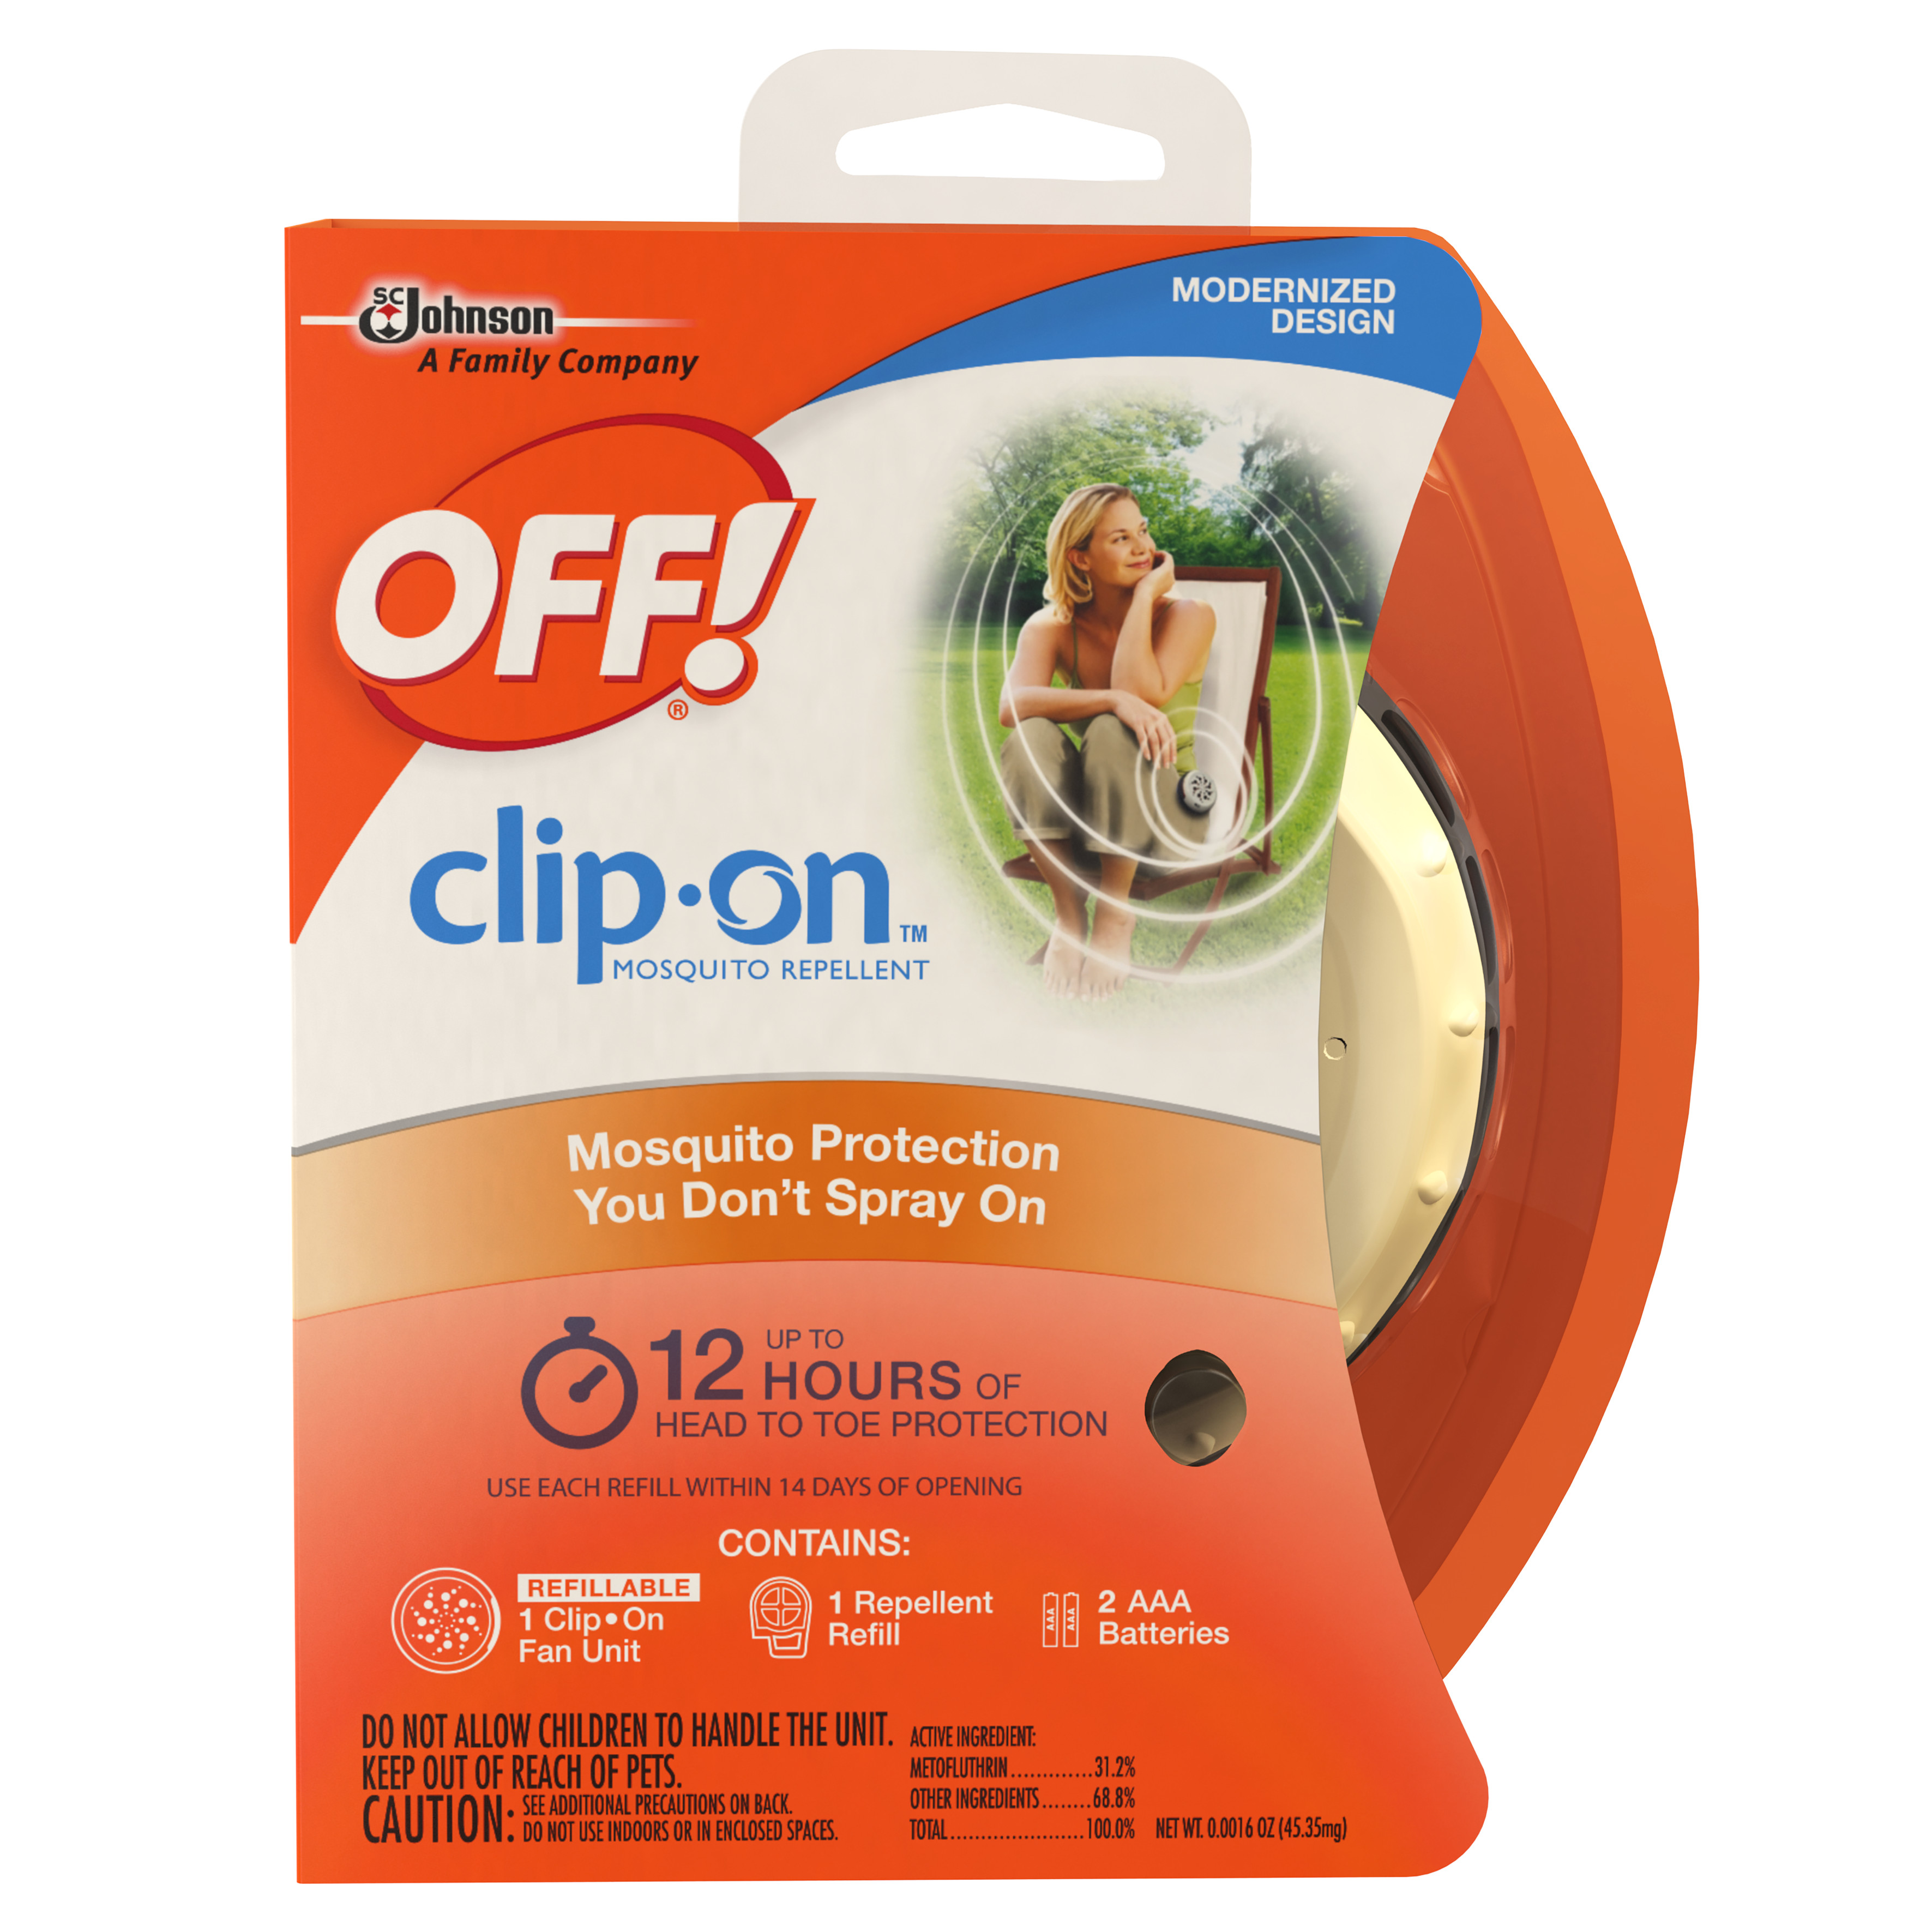 OFF! Clip-On Mosquito Repellent 0.0016 Ounces